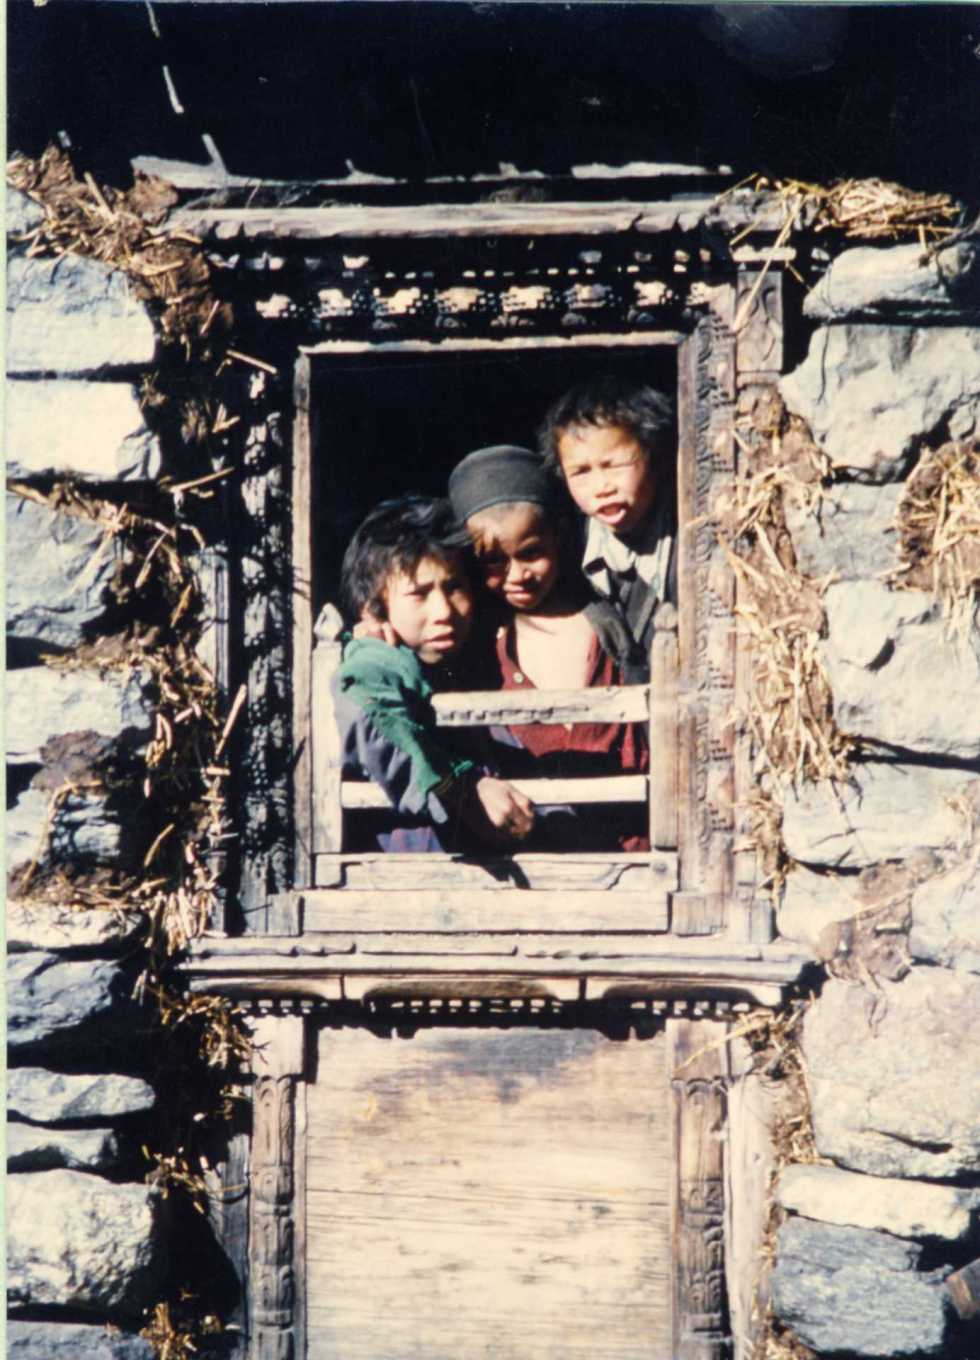 Curious kids peering from a house window in Langtang